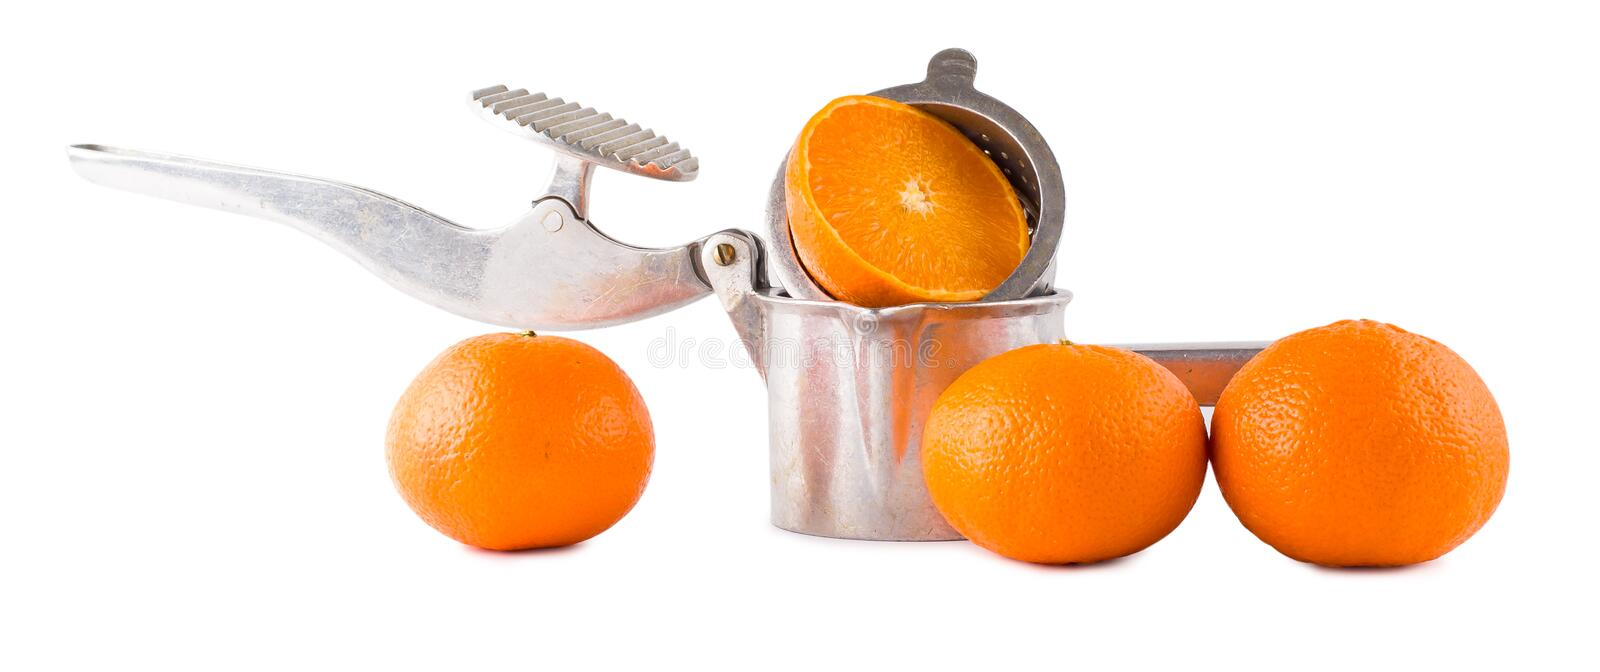 Juice extractor manual and oranges stock photography